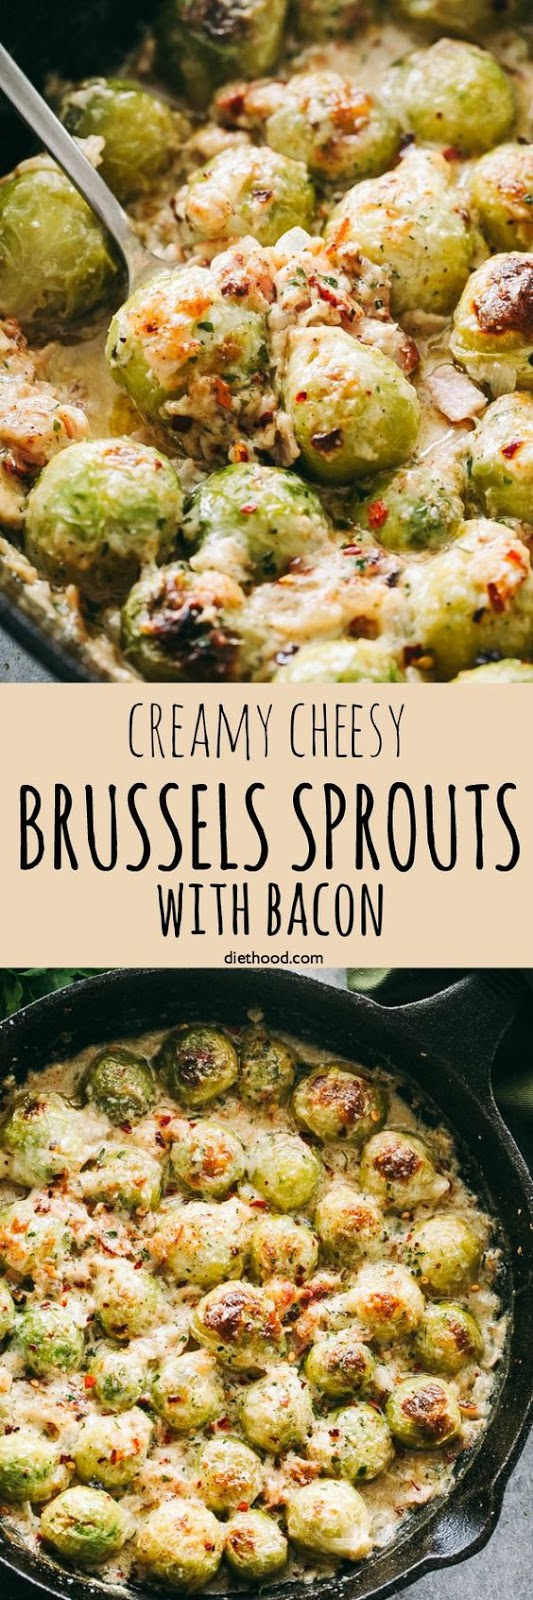 Creamy Cheesy Brussels Sprouts with Bacon